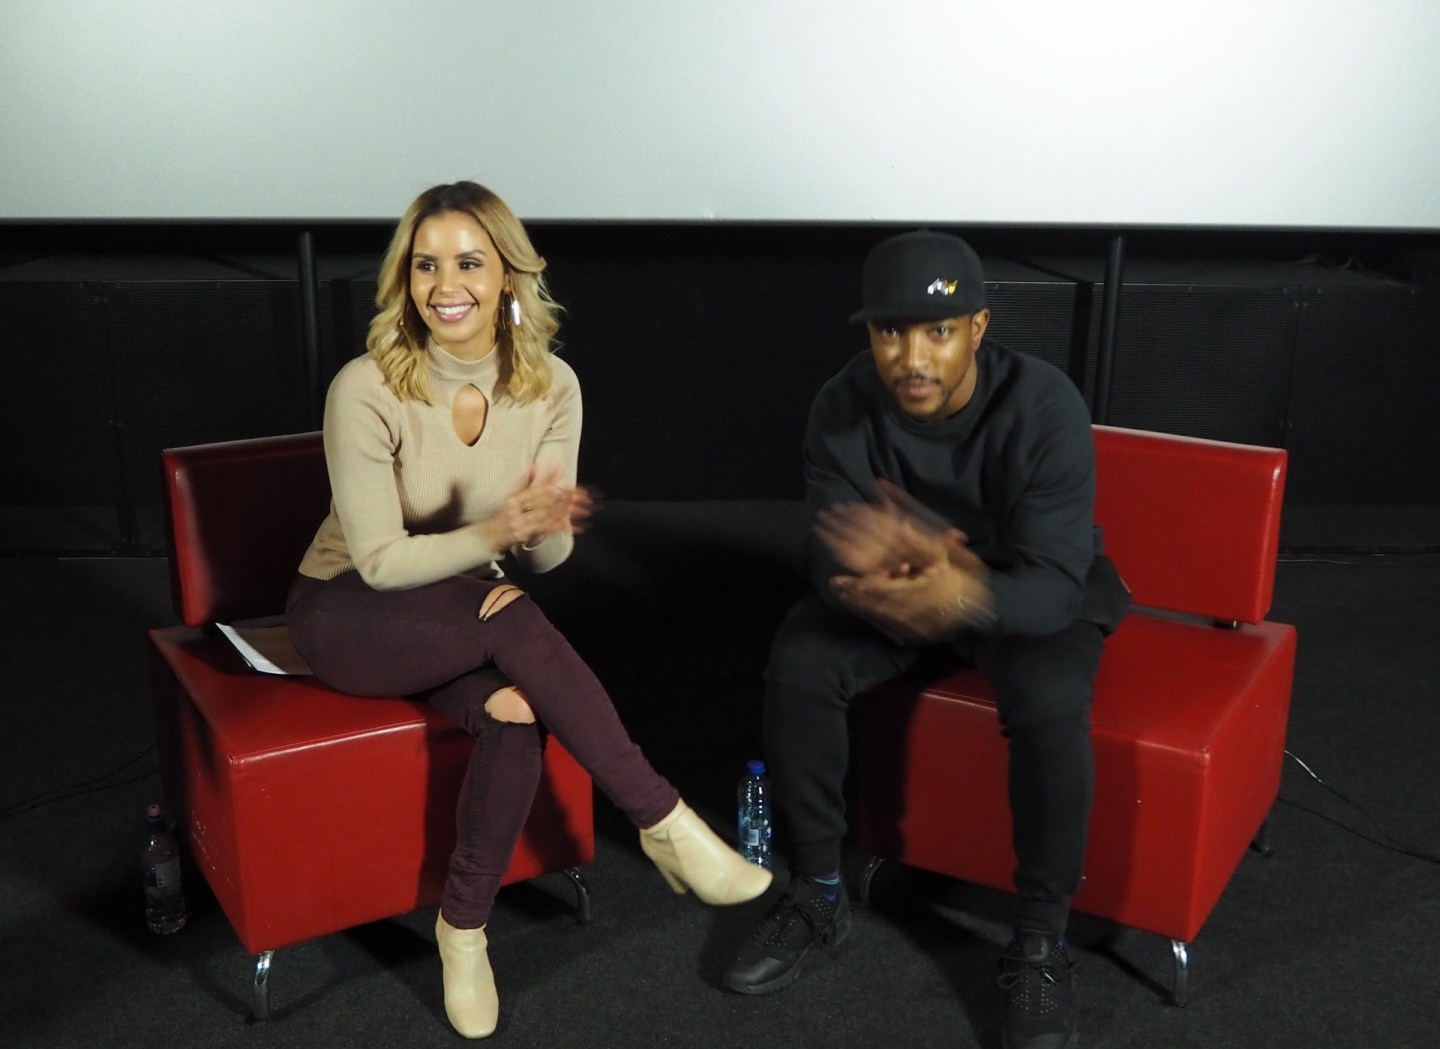 Shanie Interviews Film & TV Star Ashley Walters at 'Your Cinema' Live…